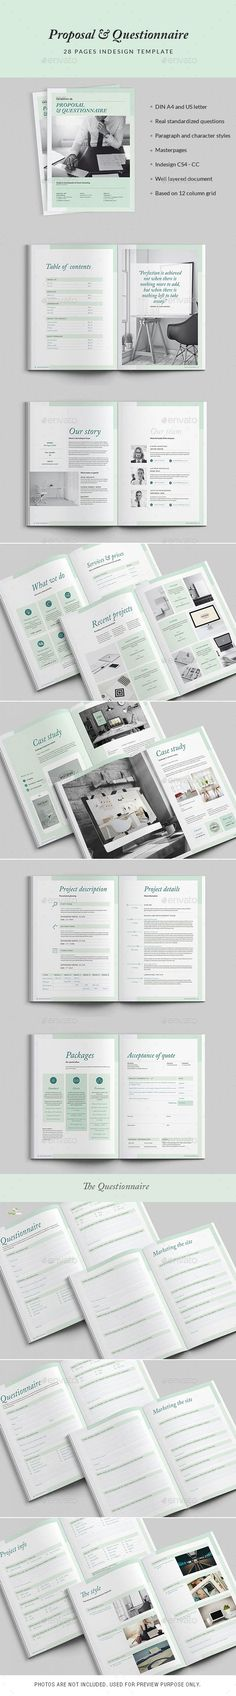 28 Pages Proposal and Questionnaire Template InDesign INDD. Download here: http://graphicriver.net/item/proposal-and-questionnaire-28-pages/15950636?ref=ksioks